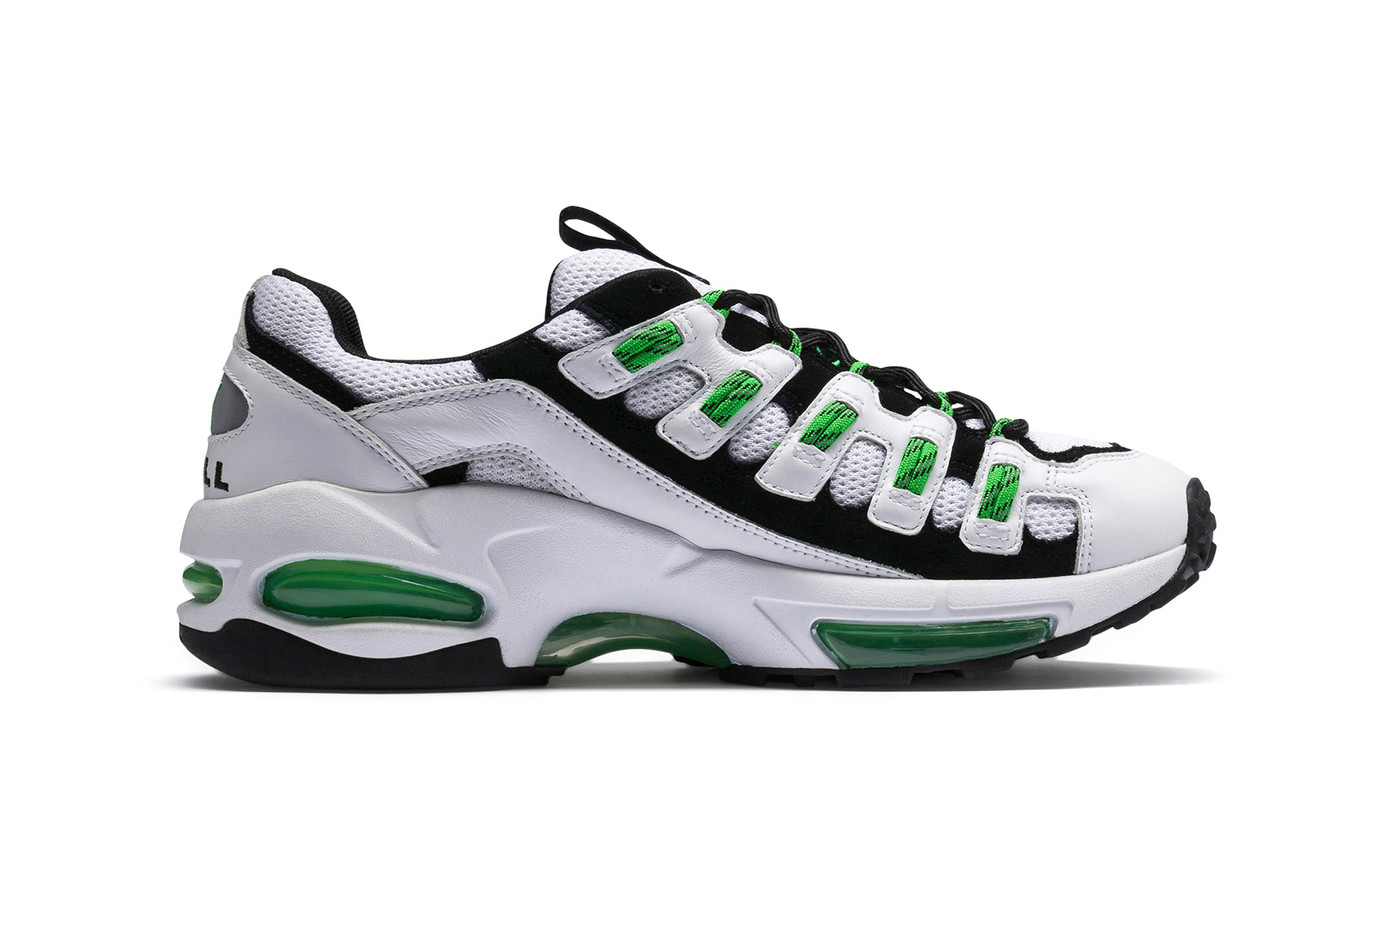 puma-cell-endura-release-white-surf-the-web-2